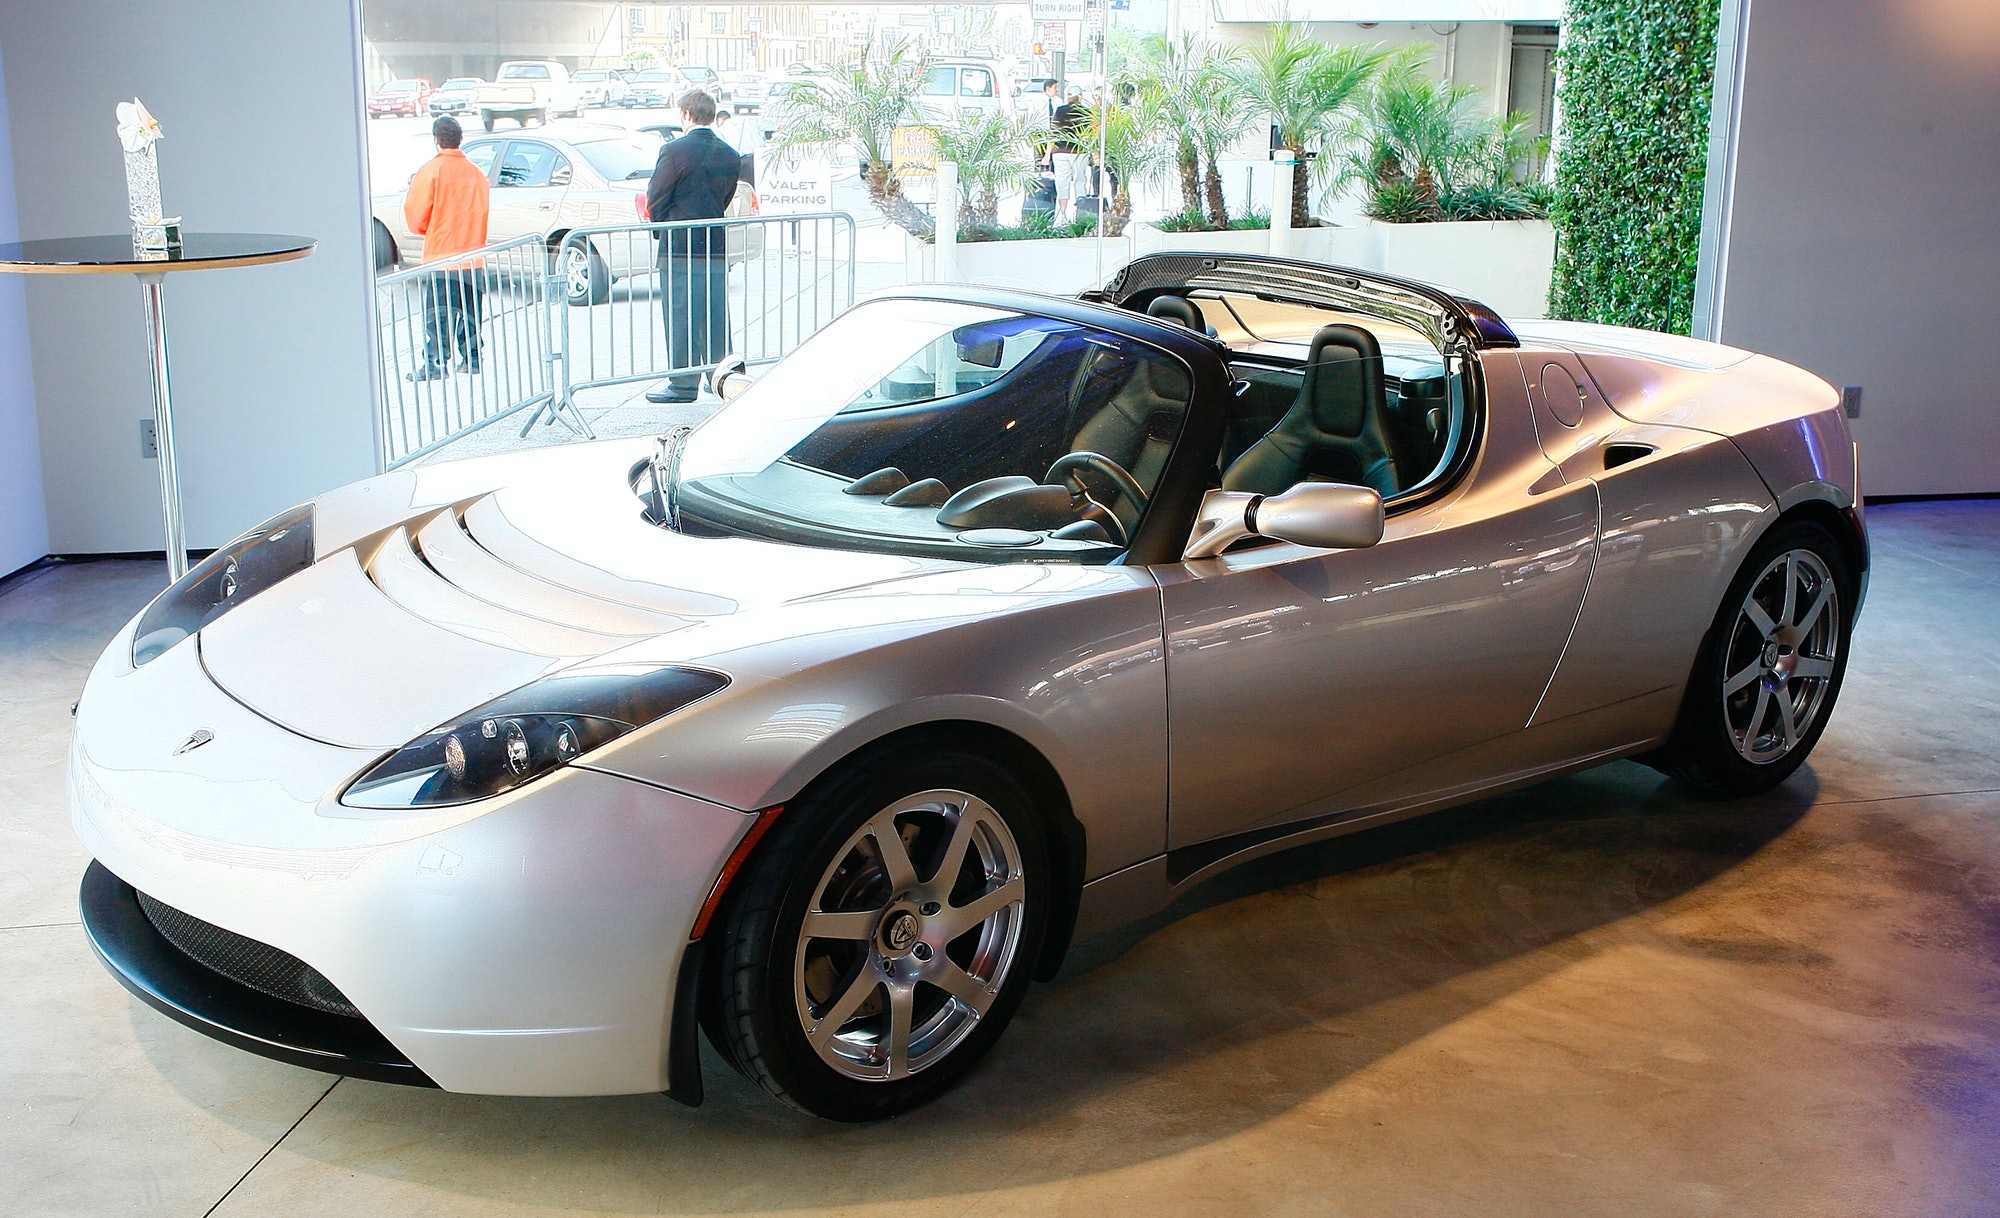 The Tesla Roadster.